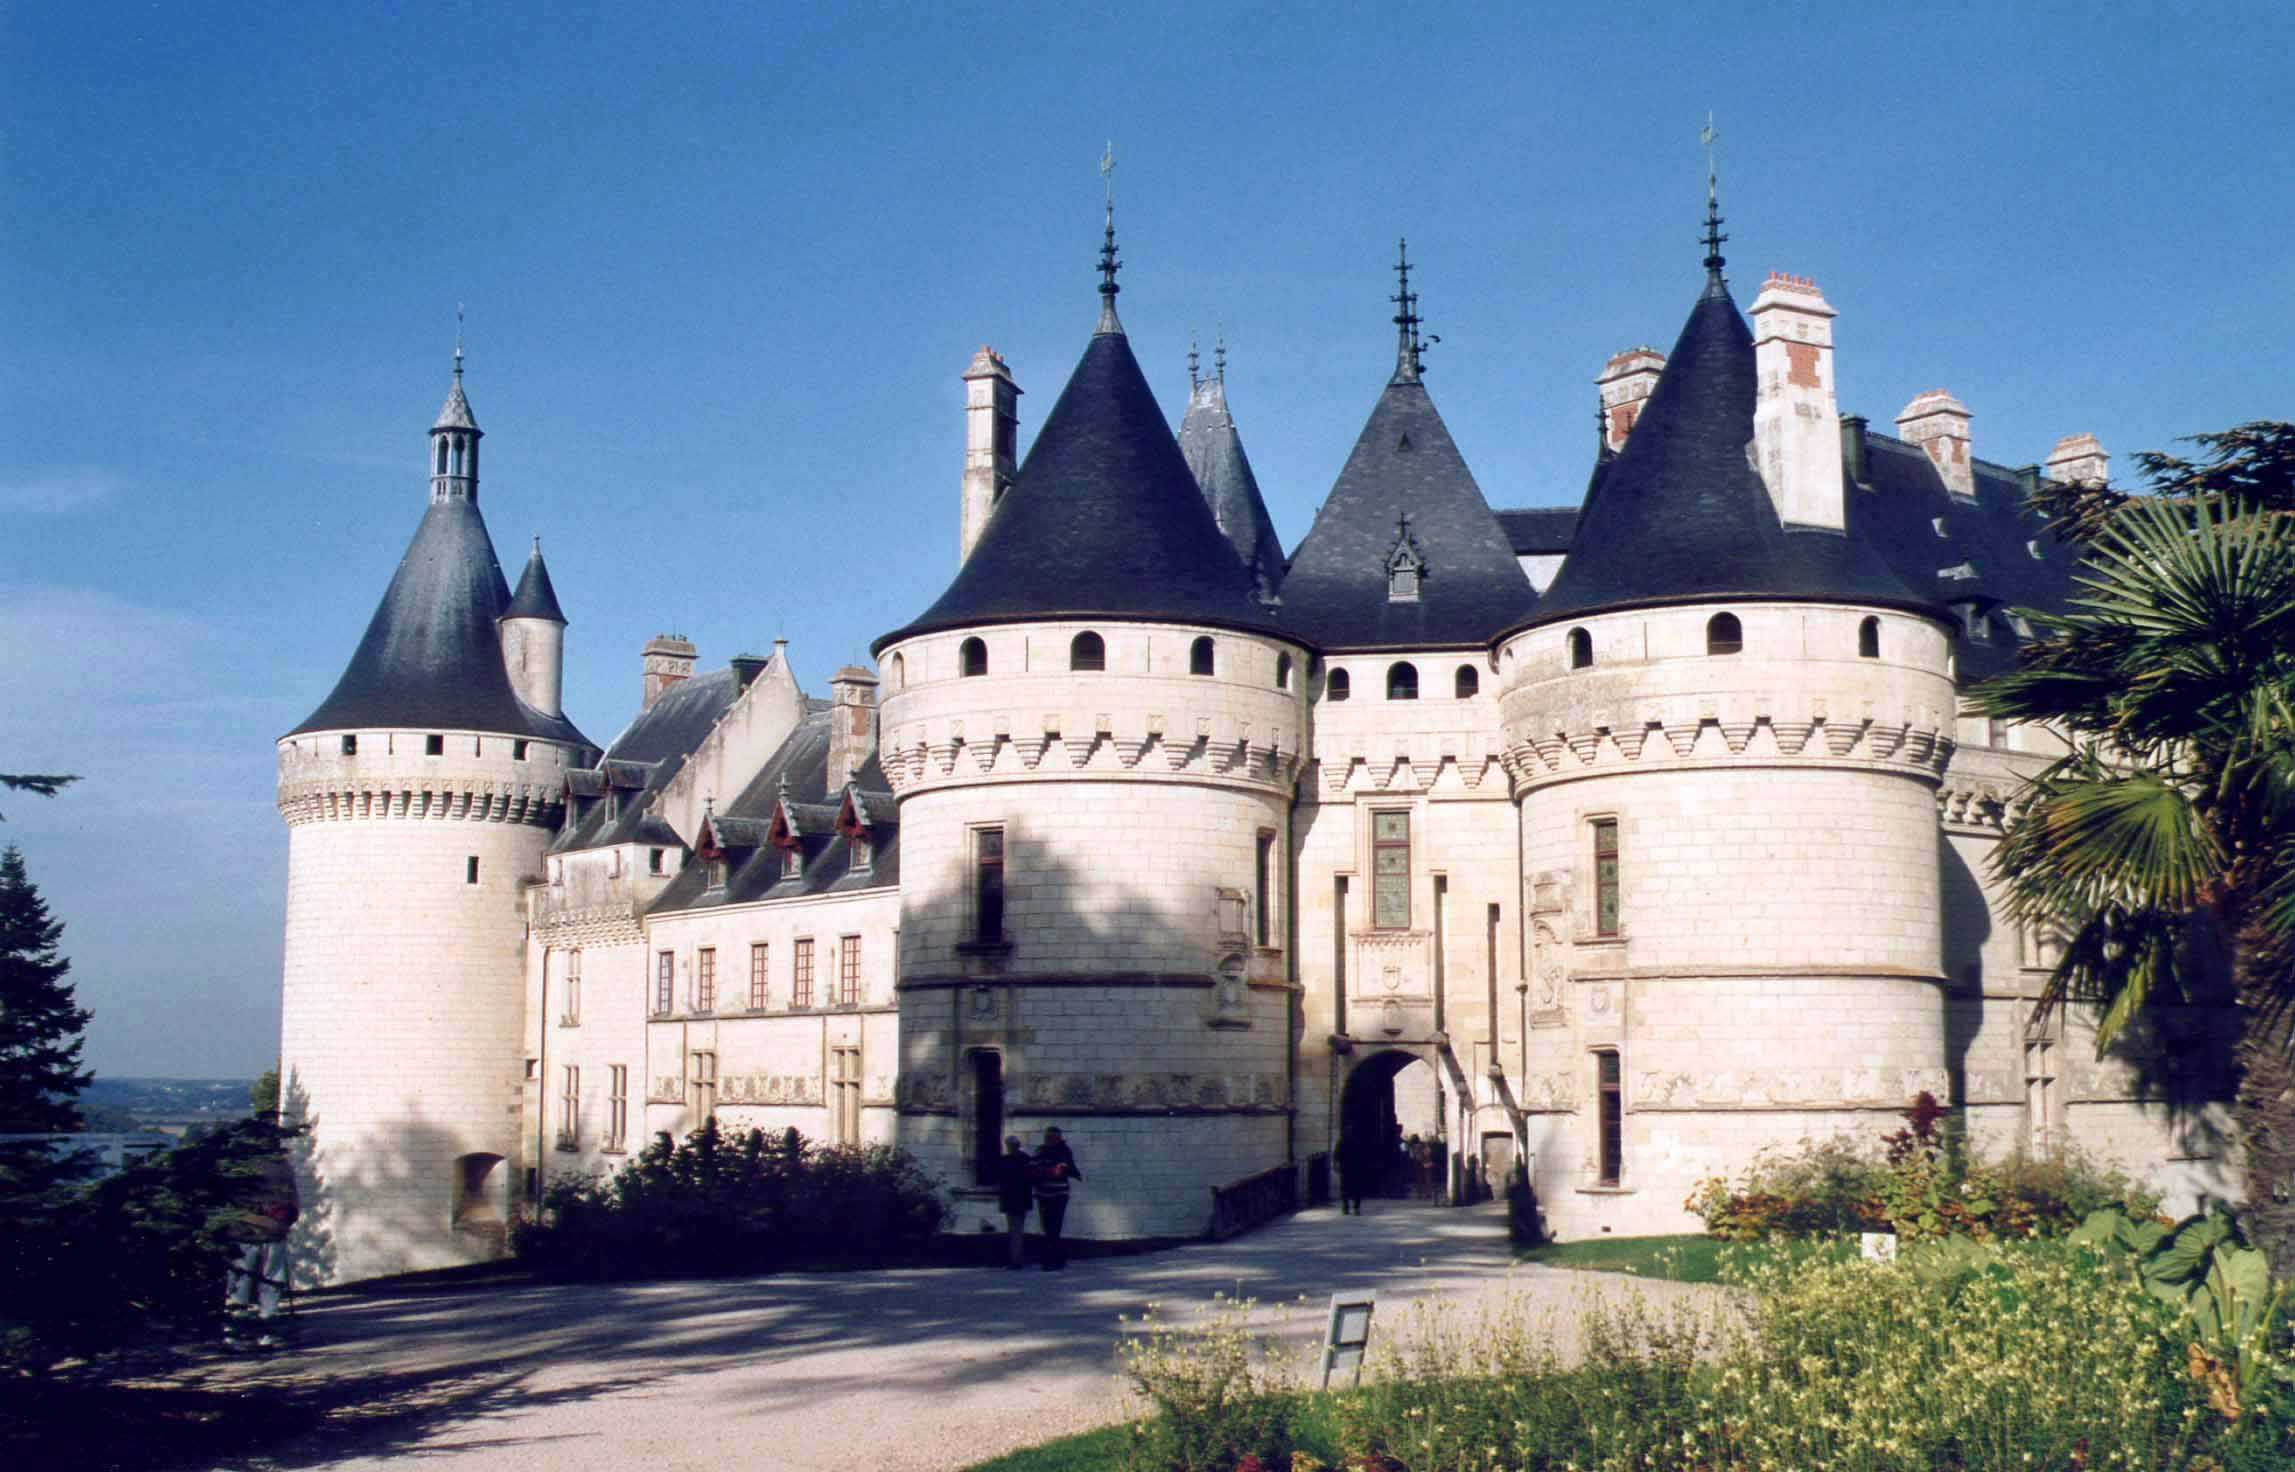 Elfinspell: Chaumont-Sur-Loire, Castle in France, original ...